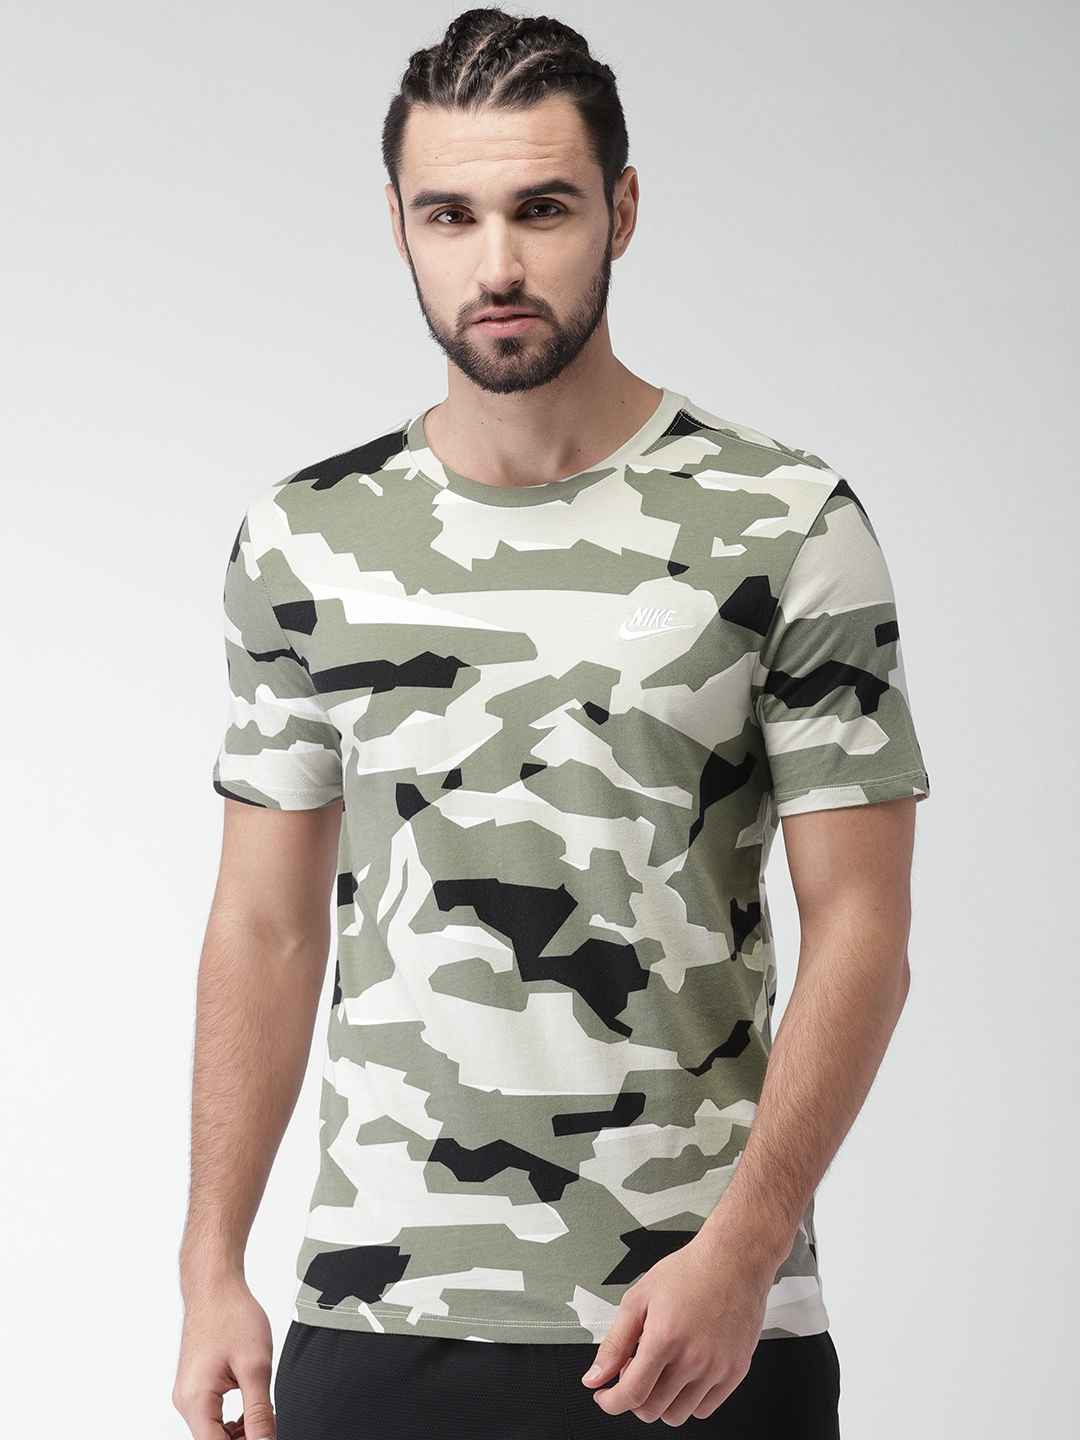 5984fe42 Buy Nike Men Olive Green & Black Printed AS NSW CAMO PACK 1 Round Neck T  Shirt - Tshirts for Men 4029260 | Myntra